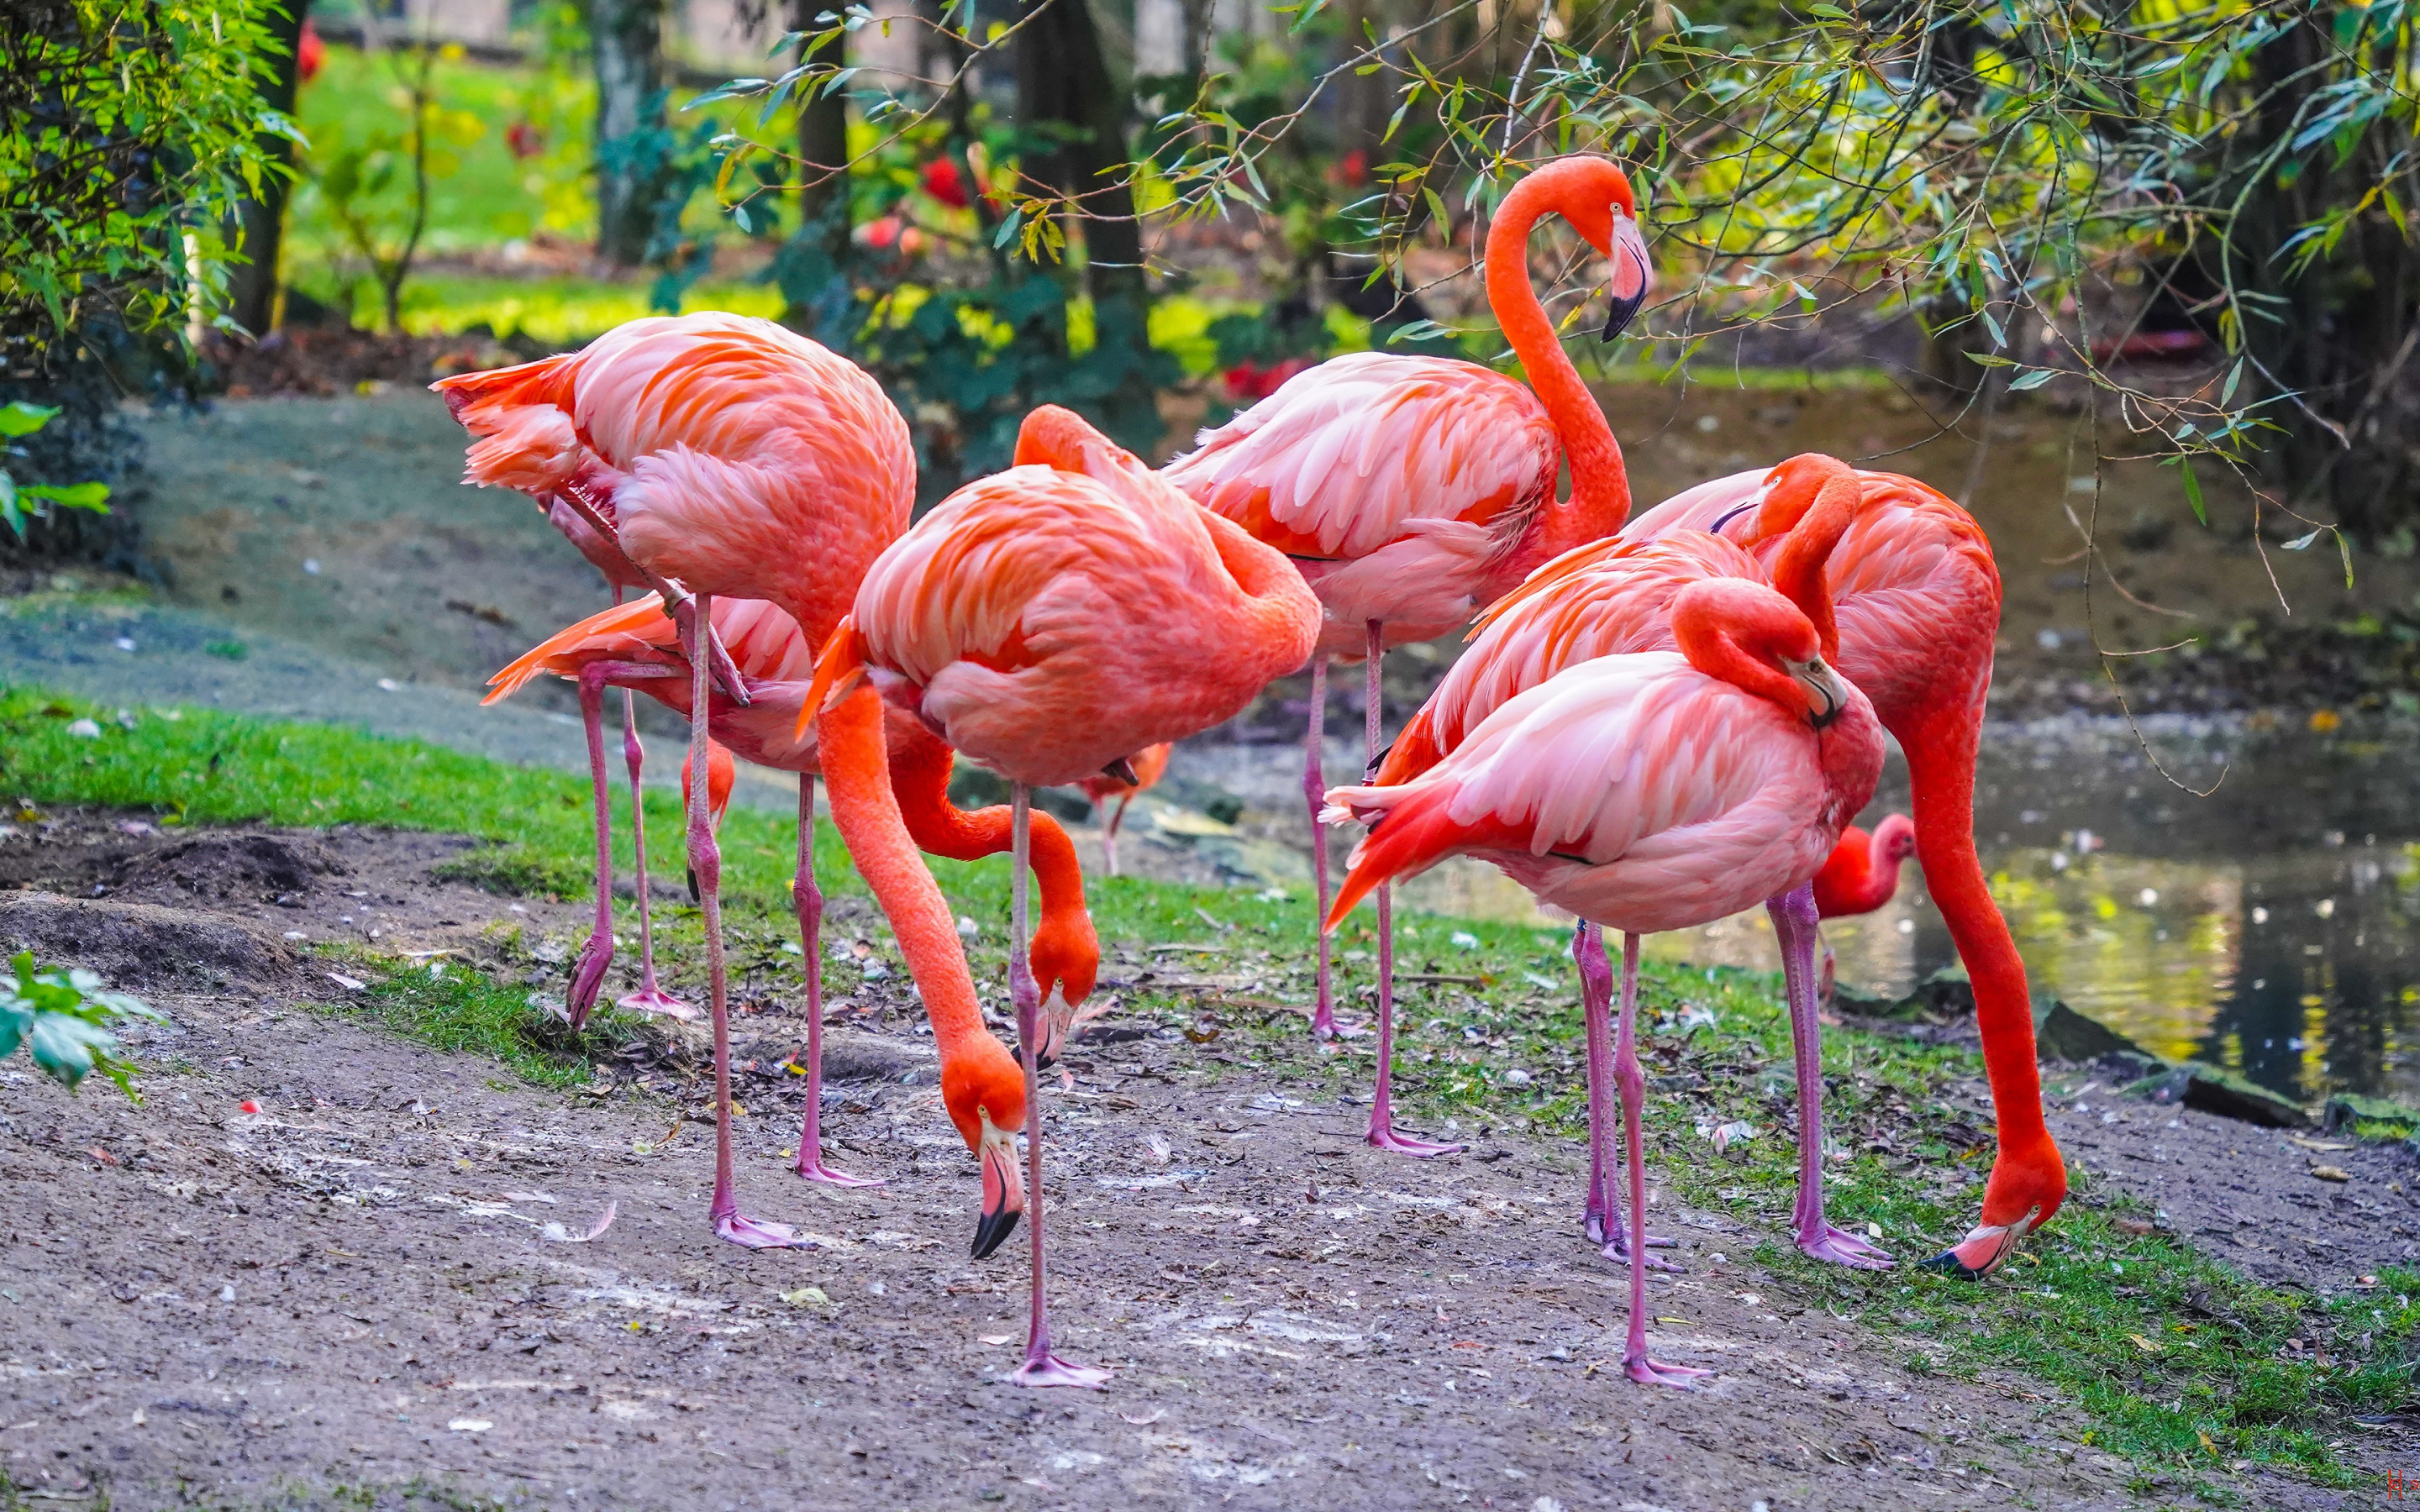 Download Wallpapers Pink Flamingos Beautiful Pink Birds Flamingos Lake Beautiful Birds For Desktop With Resolution 2880x1800 High Quality Hd Pictures Wallpapers